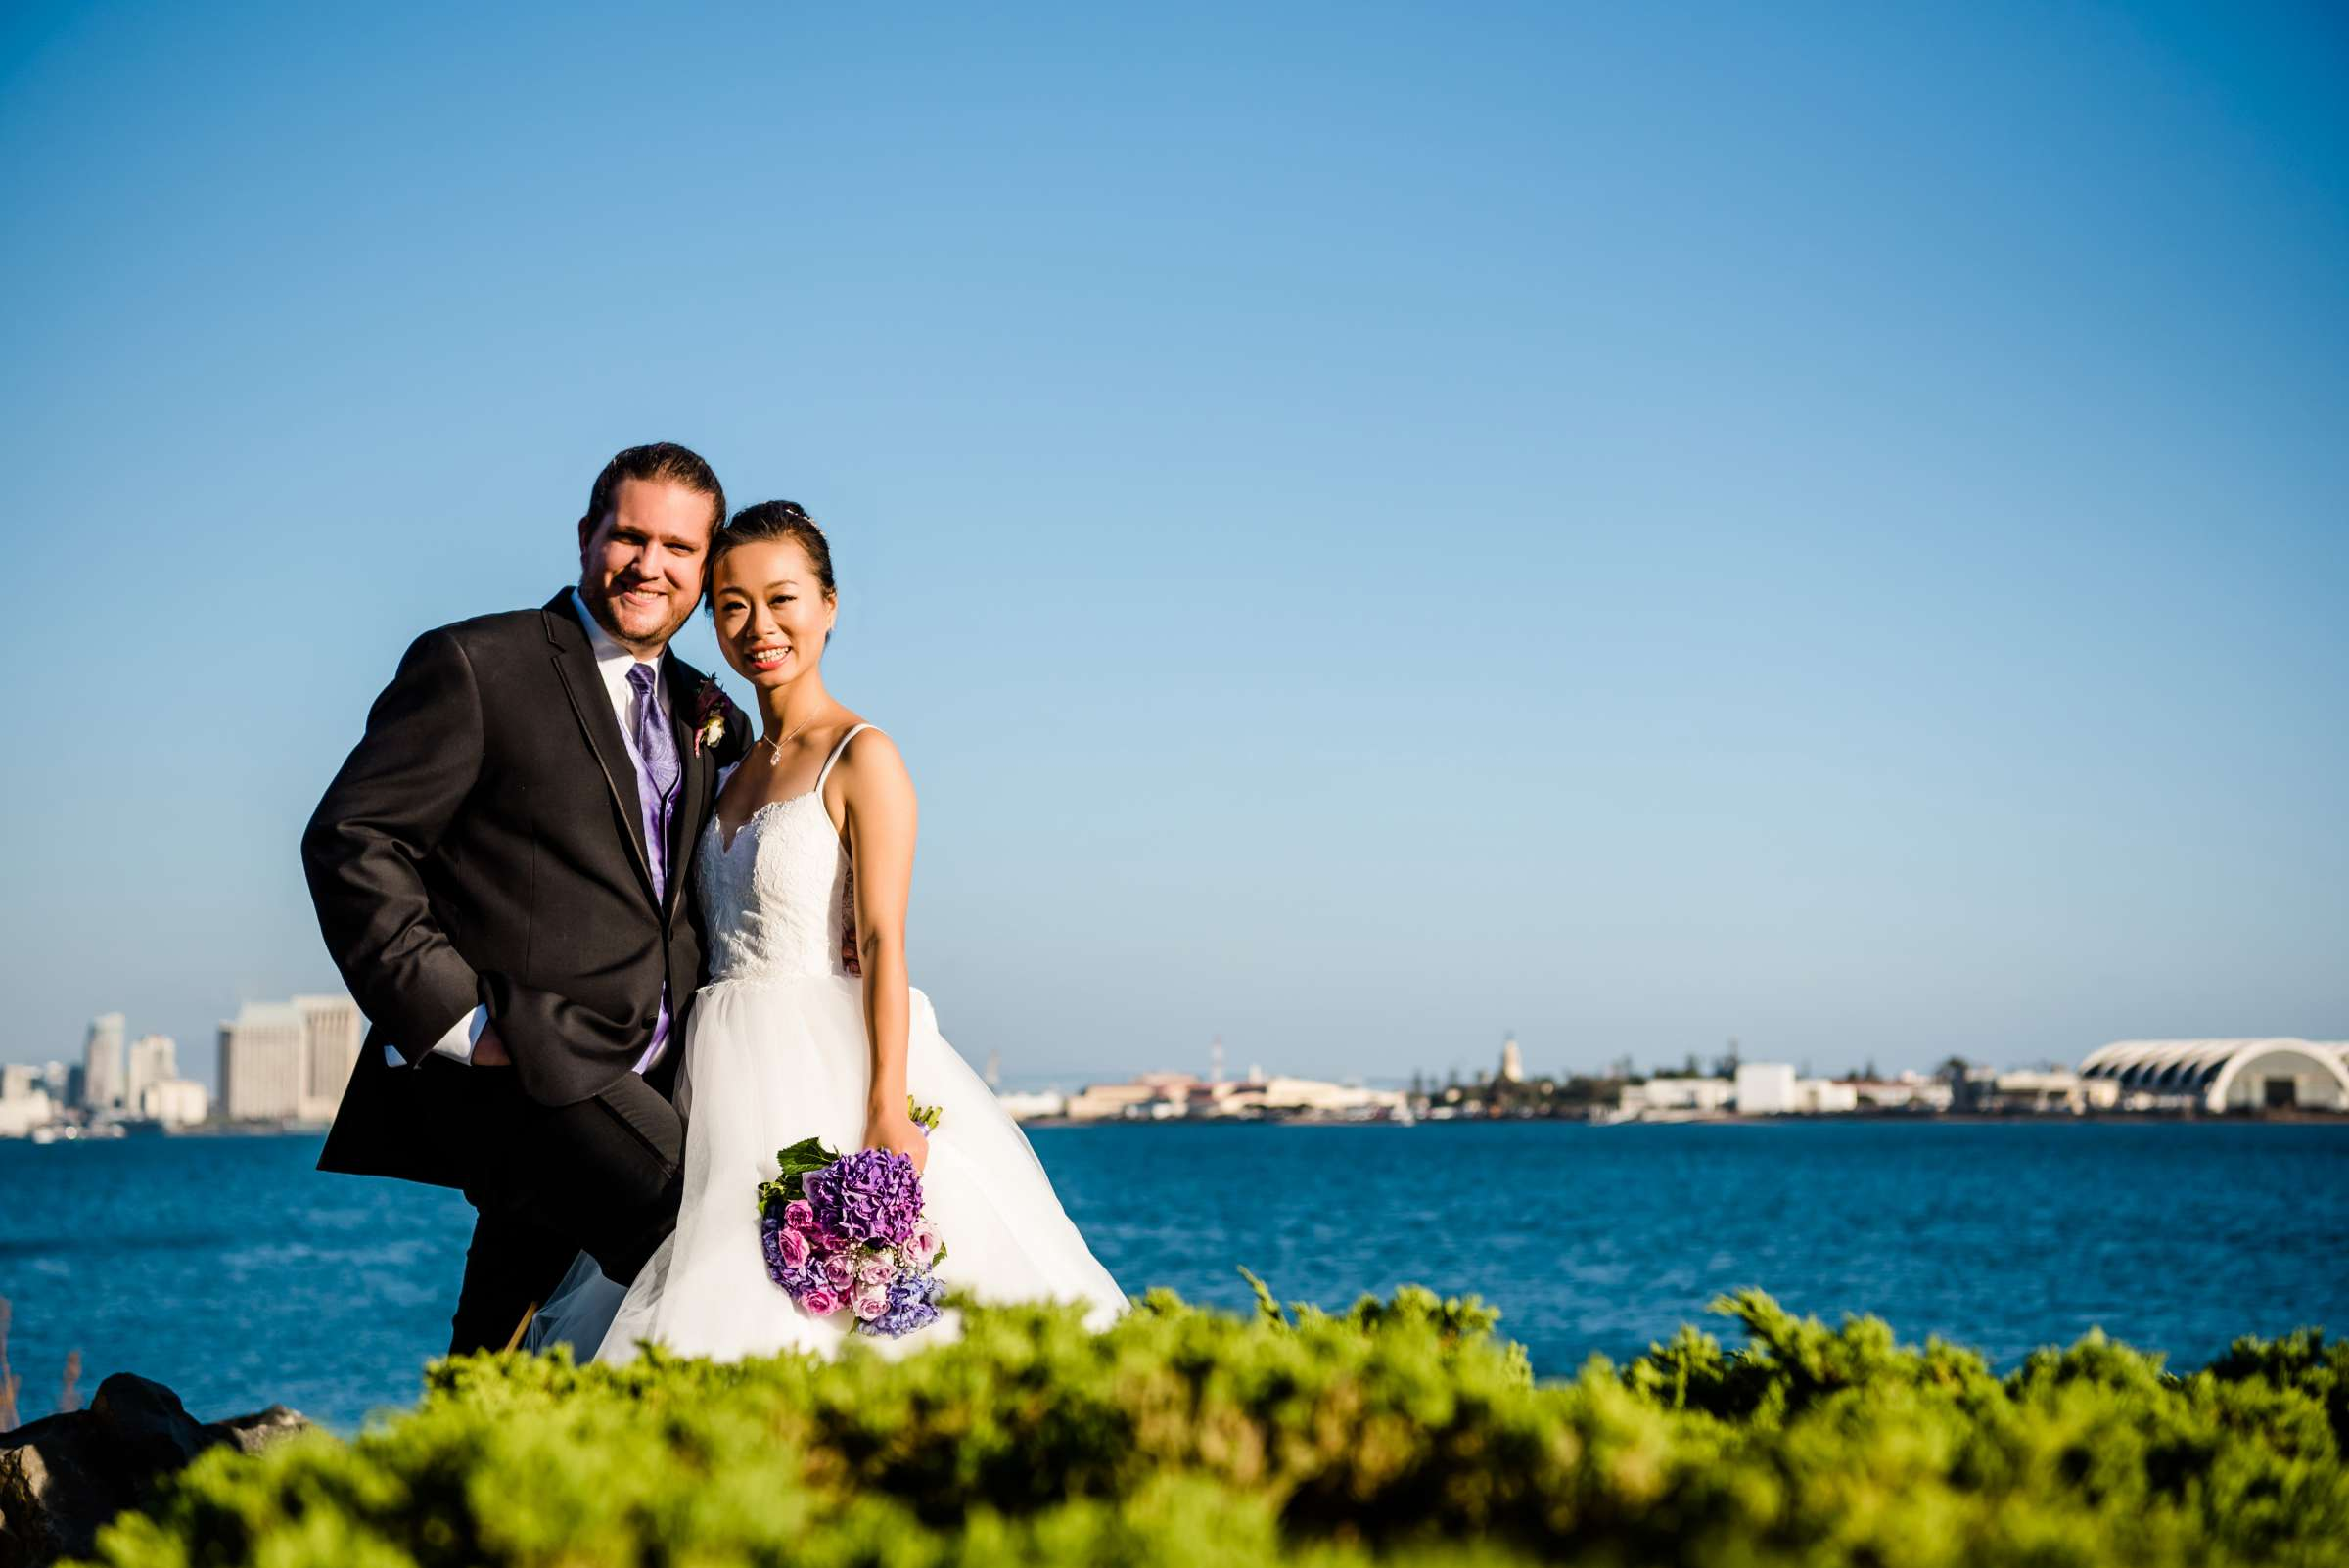 Tom Hams Lighthouse Wedding, Mei and Brendan Wedding Photo #275538 by True Photography